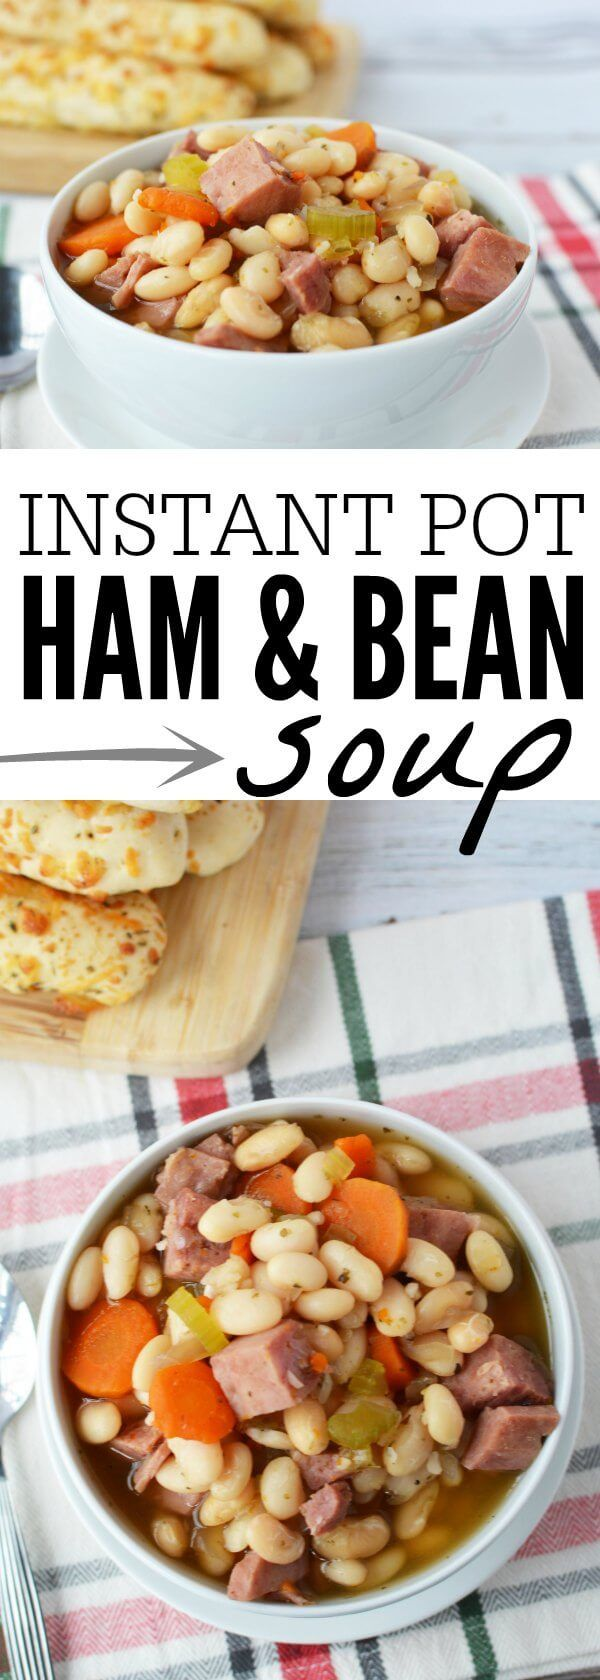 You will love how simple this delicious Instant Pot ham and bean soup recipe is! It's hearty and filling. Perfect for a cold day! Give this a try.